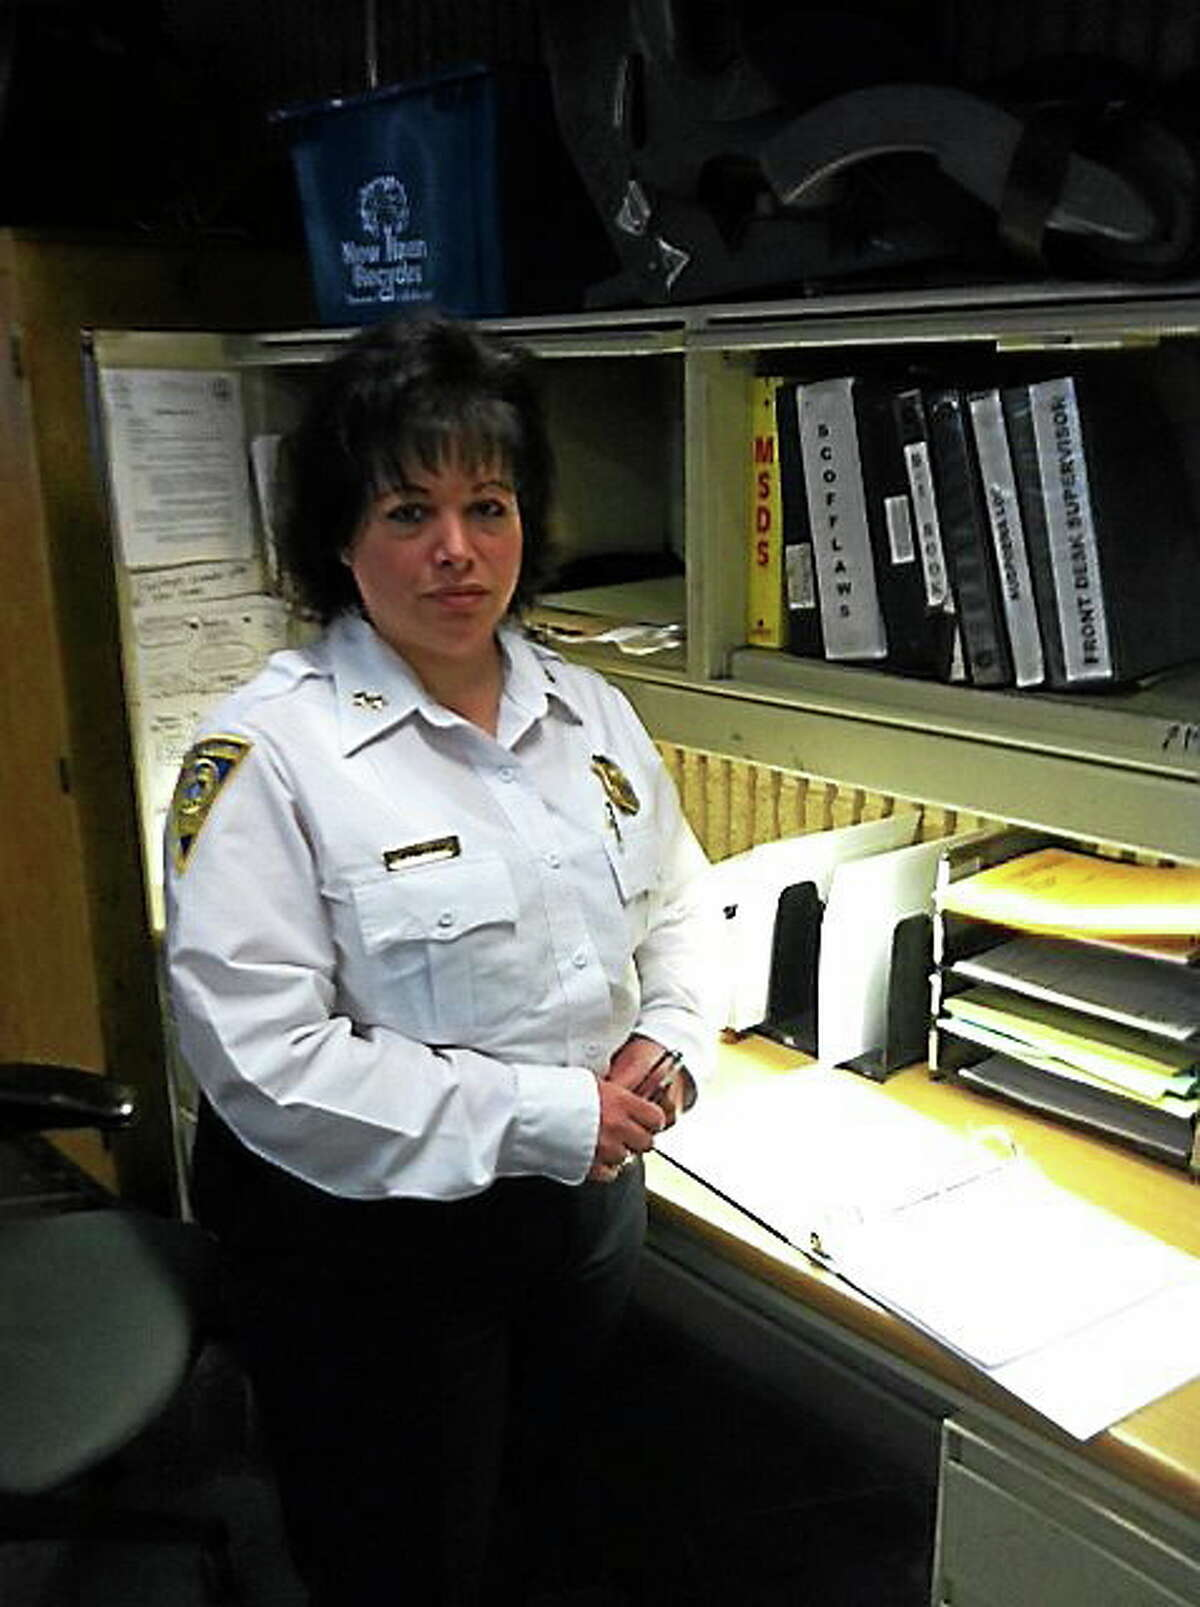 New Haven police have an arrest log now available for the public to review, after they failed a Freedom of Information compliance check conducted by staff at the New Haven Register and sister newspapers. Assistant Chief of Police Denise Blanchard stands next to the new arrest log. It is available for viewing 24 hours a day, seven days a week. (Michelle Tuccitto Sullo — New Haven Register)